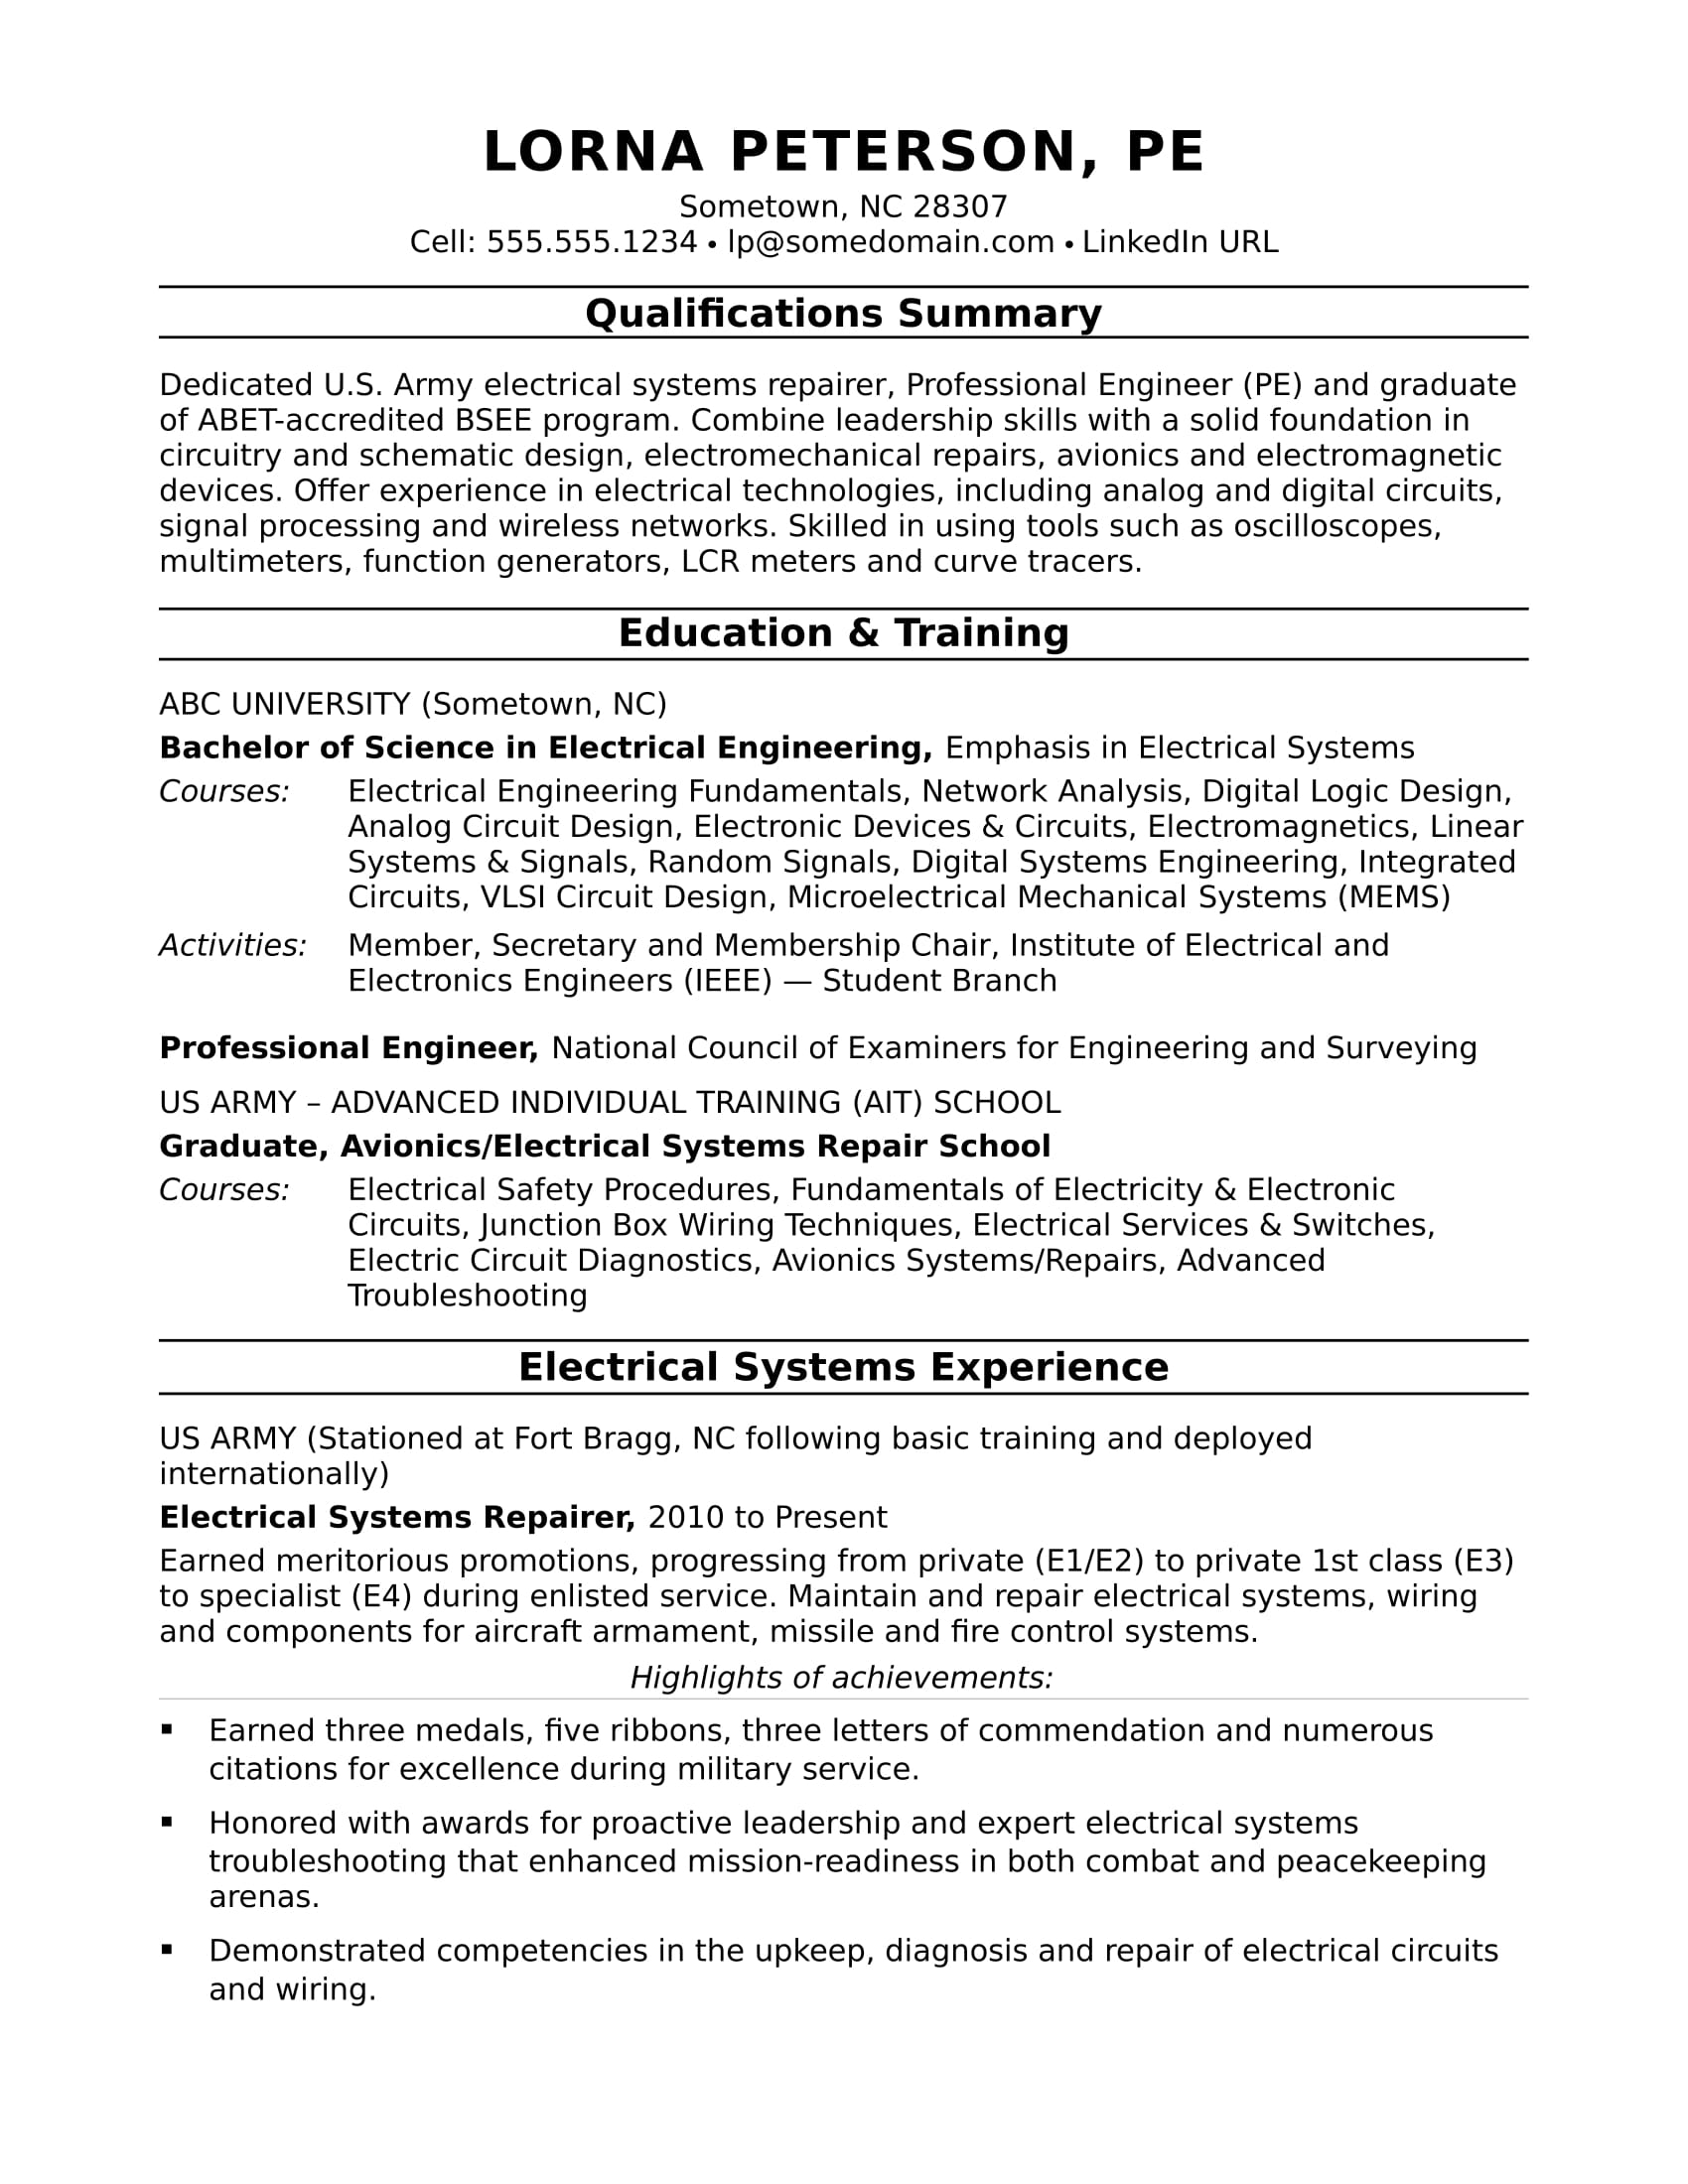 Sample Resume For A Midlevel Electrical Engineer  Summary Of Skills For Resume